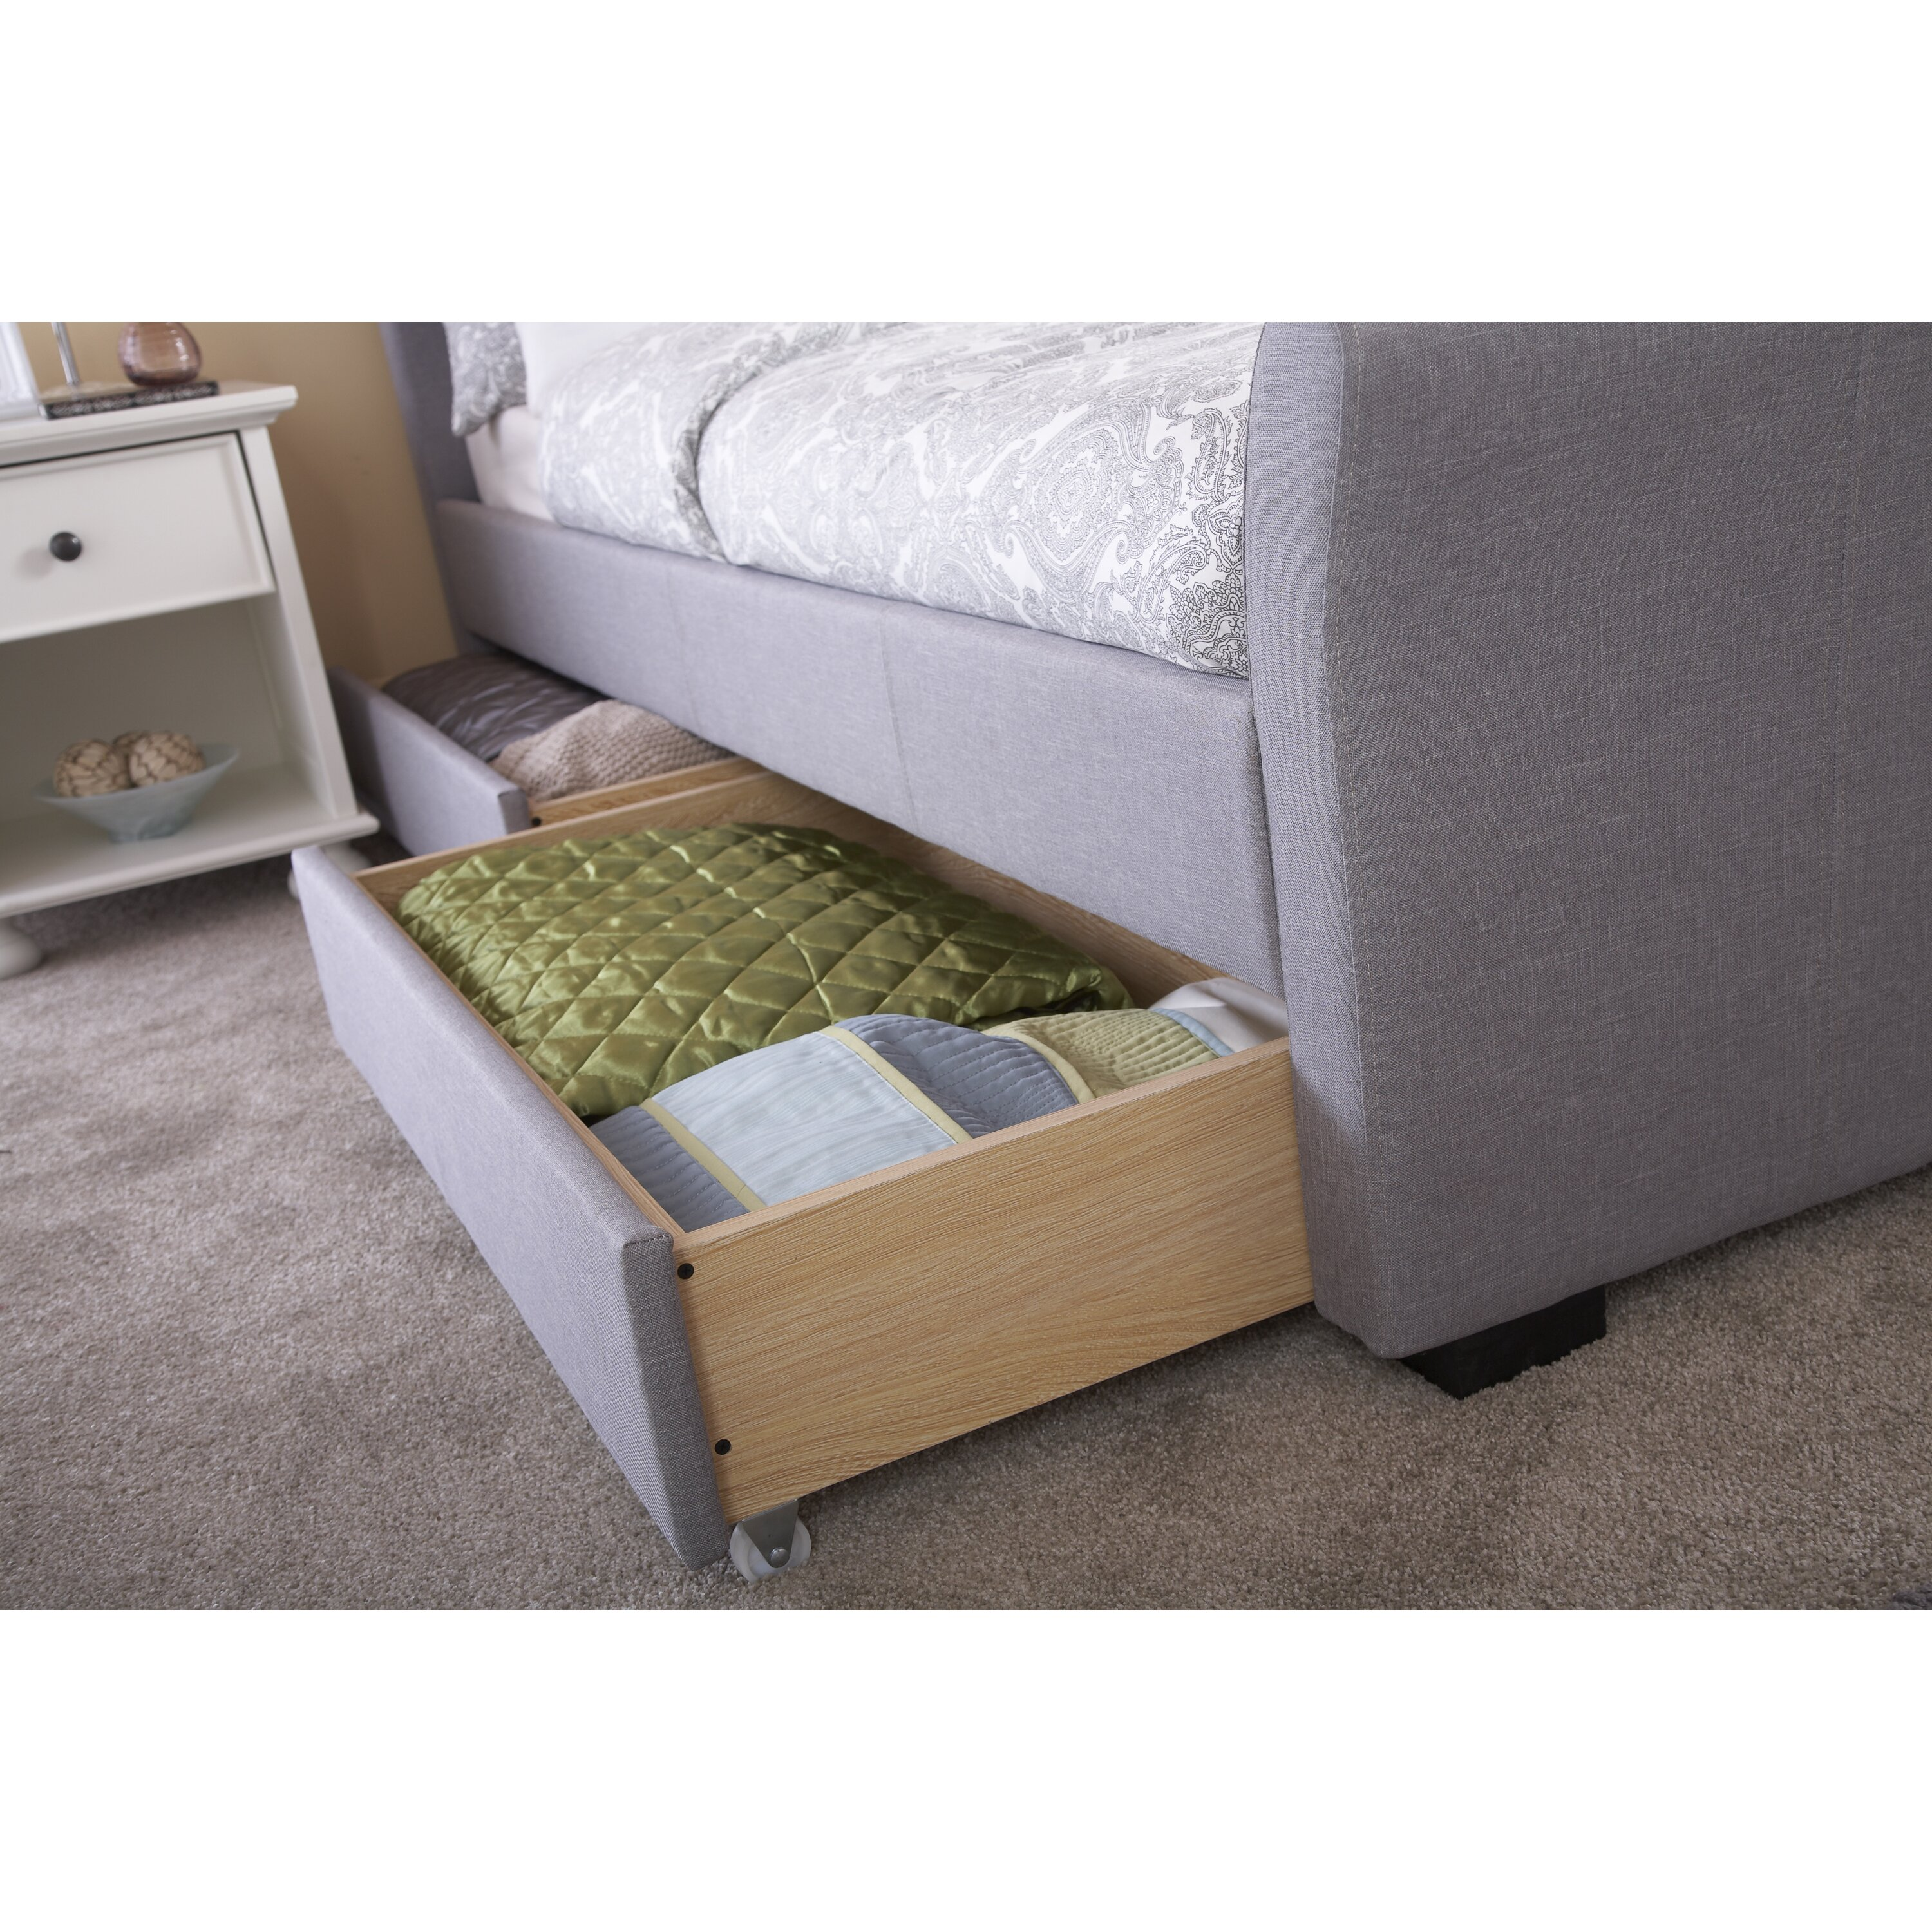 Home loft concept hannah upholstered storage bed reviews for Home loft concept bunk bed